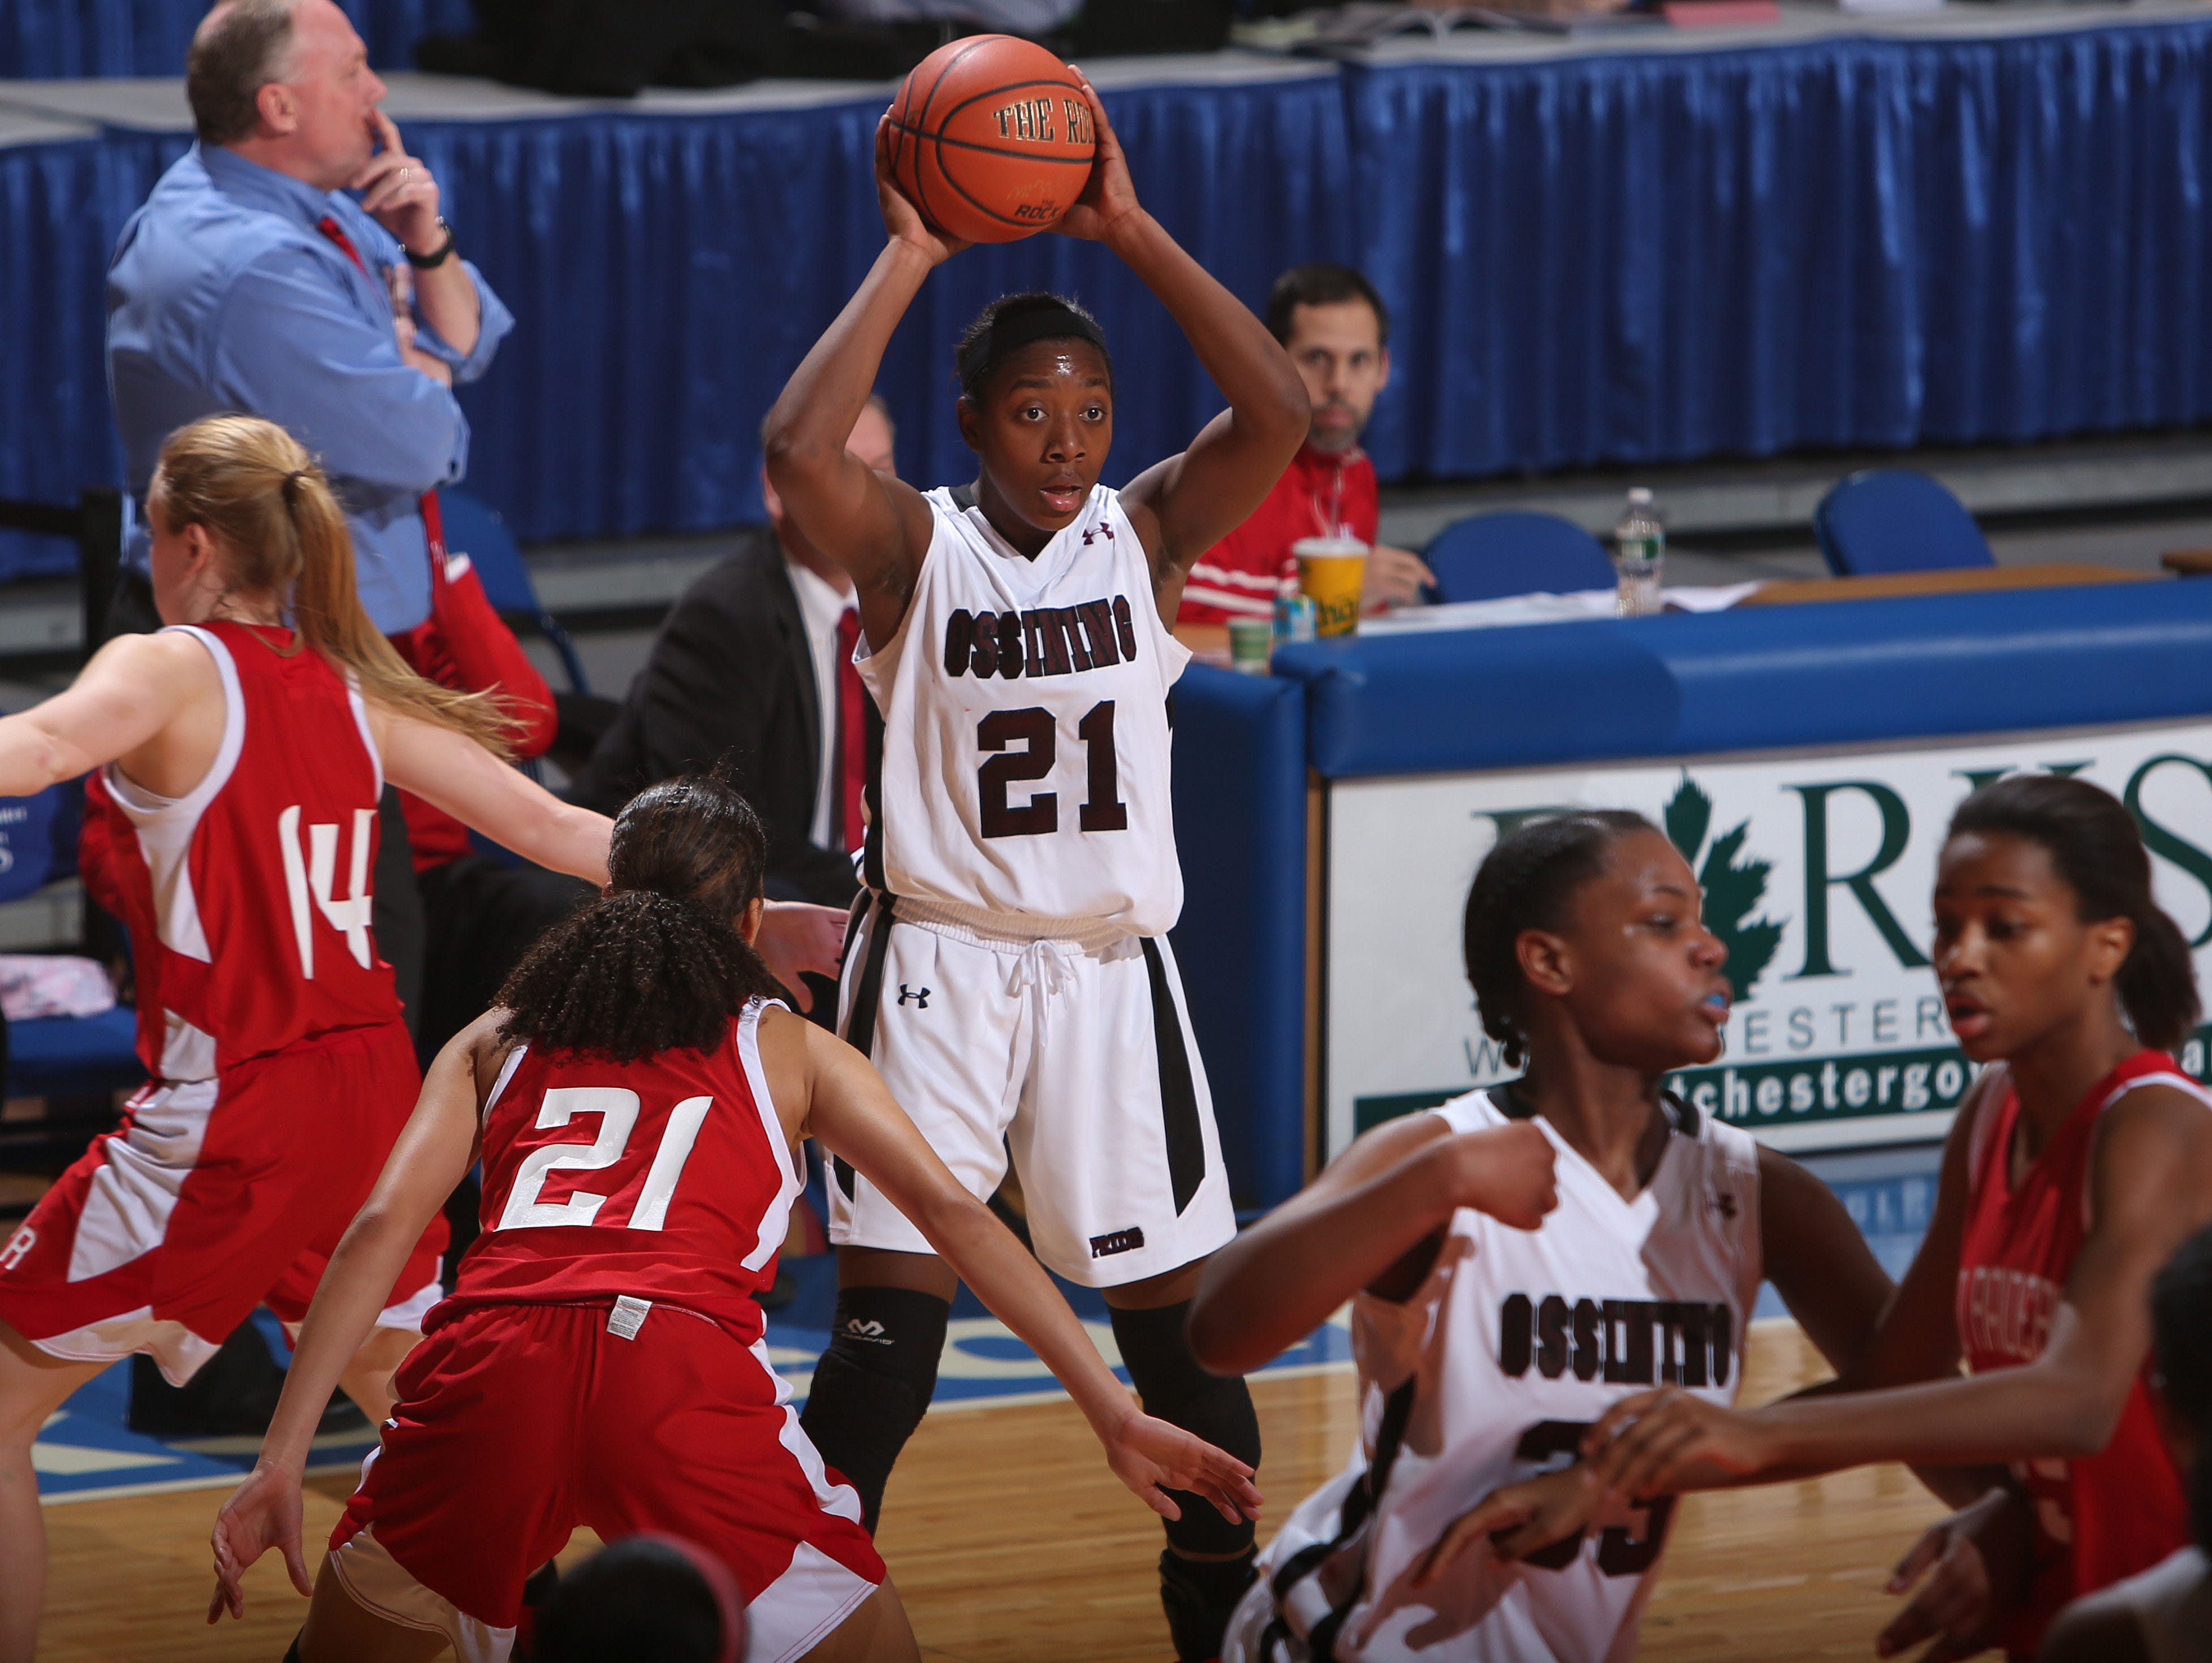 Ossining's Shadeen Samuels (21) looks for an open teammate against North Rockland during the girls basketball Section 1 Class AA semifinal at the Westchester County Center in White Plains Feb. 26, 2015.